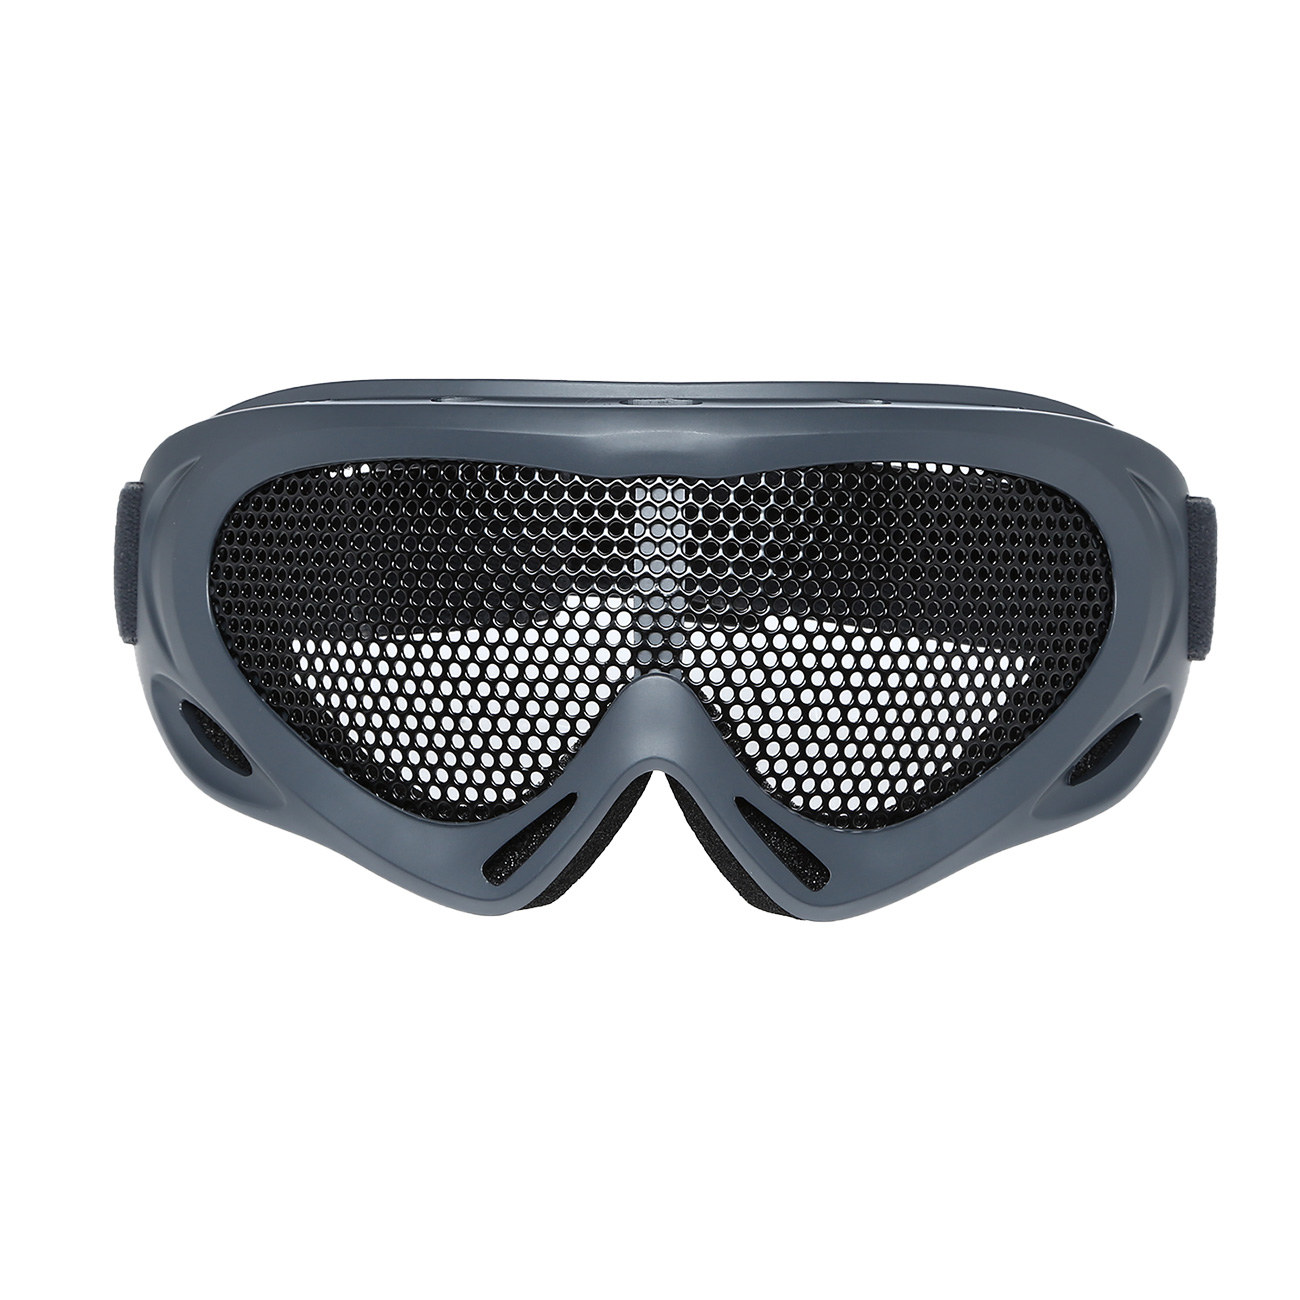 Nuprol Brille Pro Mesh Eye Protection Airsoft Gitterbrille grau 1